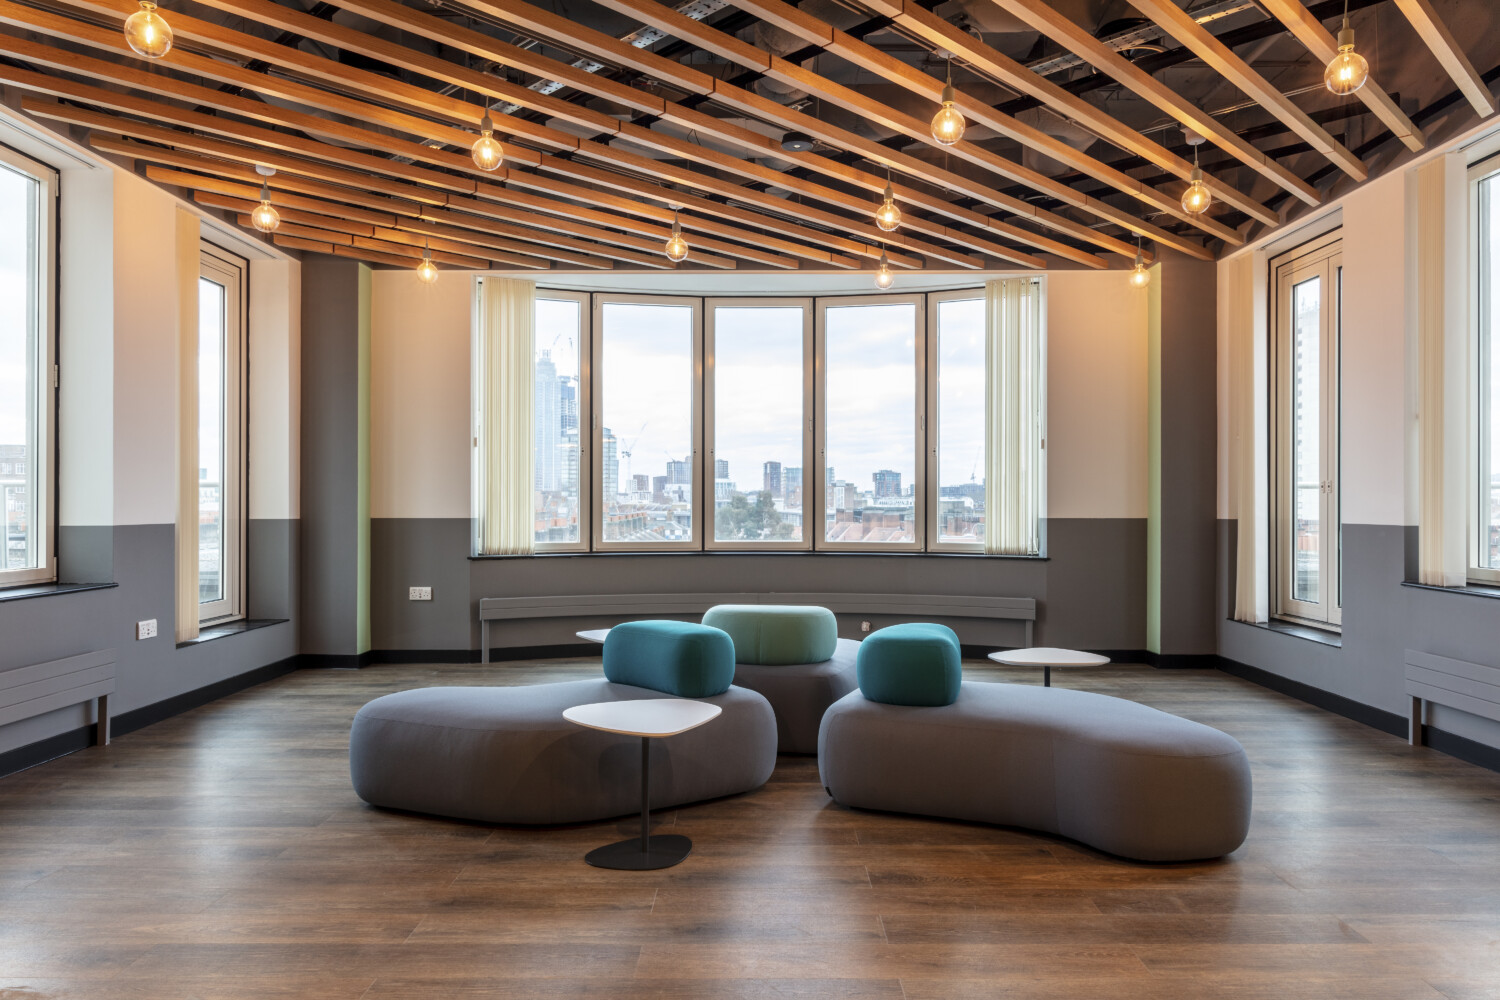 BW: Workplace Experts has created a modern workspace for civil servants with the revival of Government building in Westminster